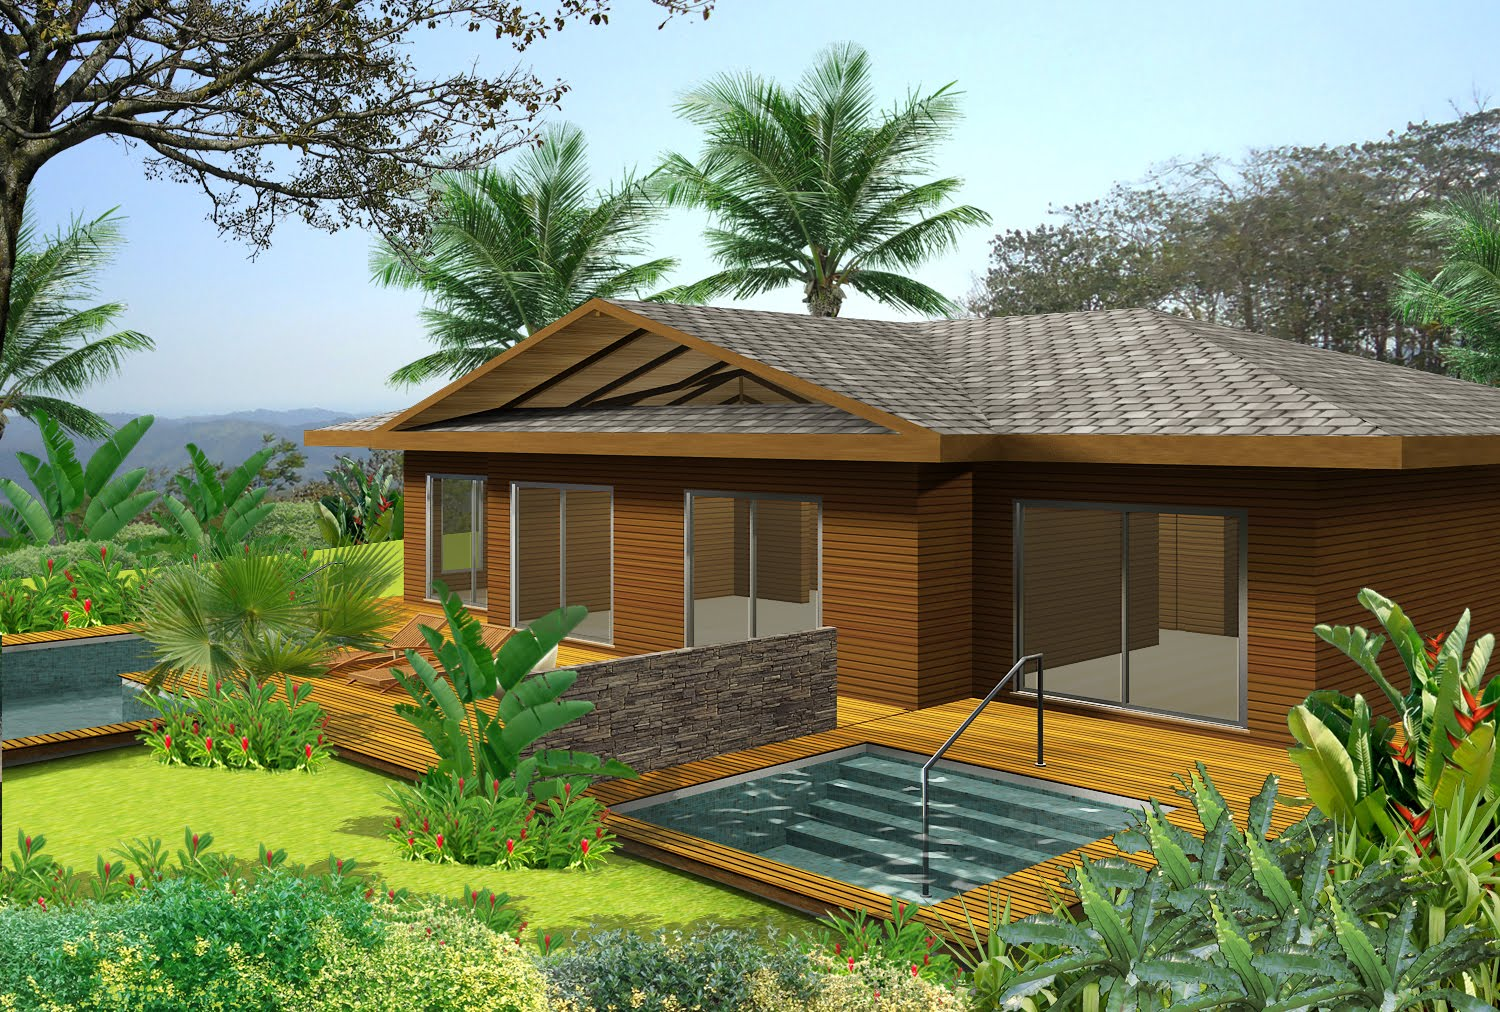 House Design Modern Two Costa Rica Invest New Bungalow Designs For Carara National Eco